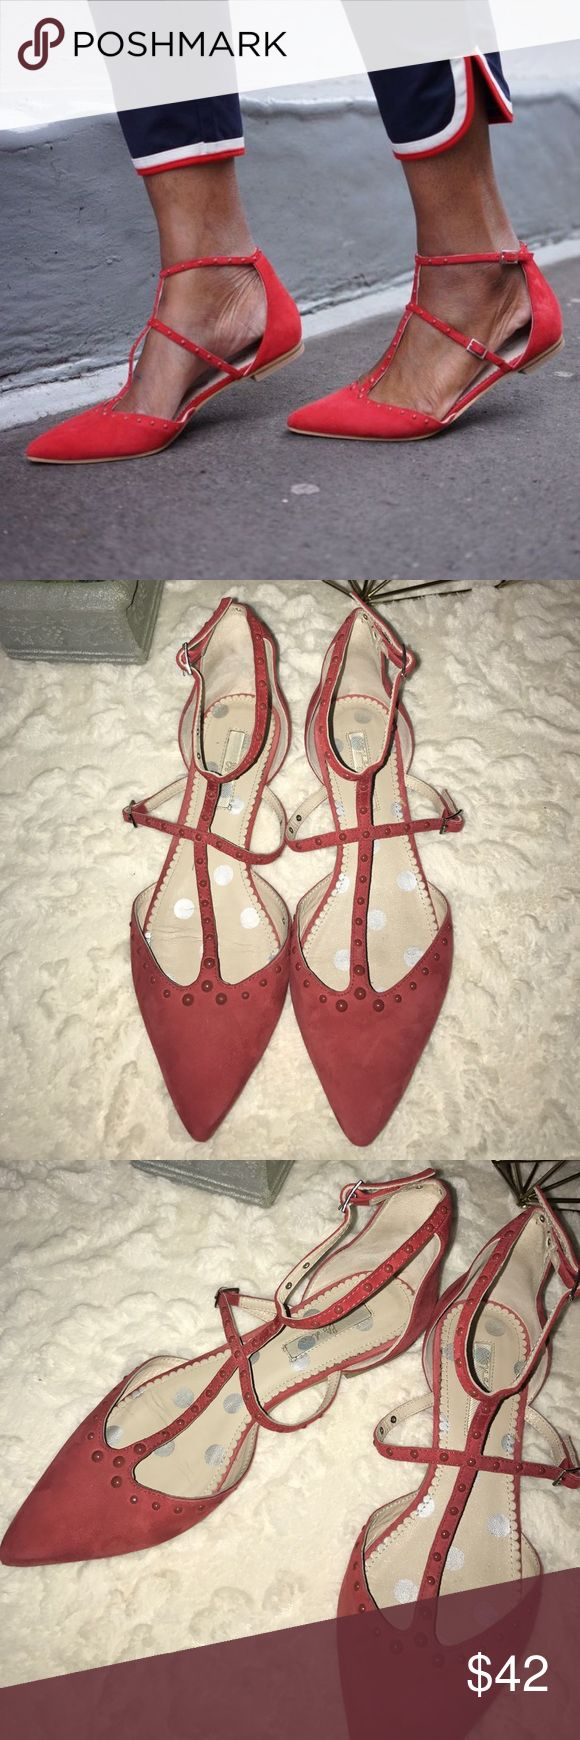 Boden Dark Red T-Strap Flats Boden Strappy T Bar. For a easy everyday chic look. Very soft suede, Lining leather and Sole man-made. Boden Shoes Flats & Loafers